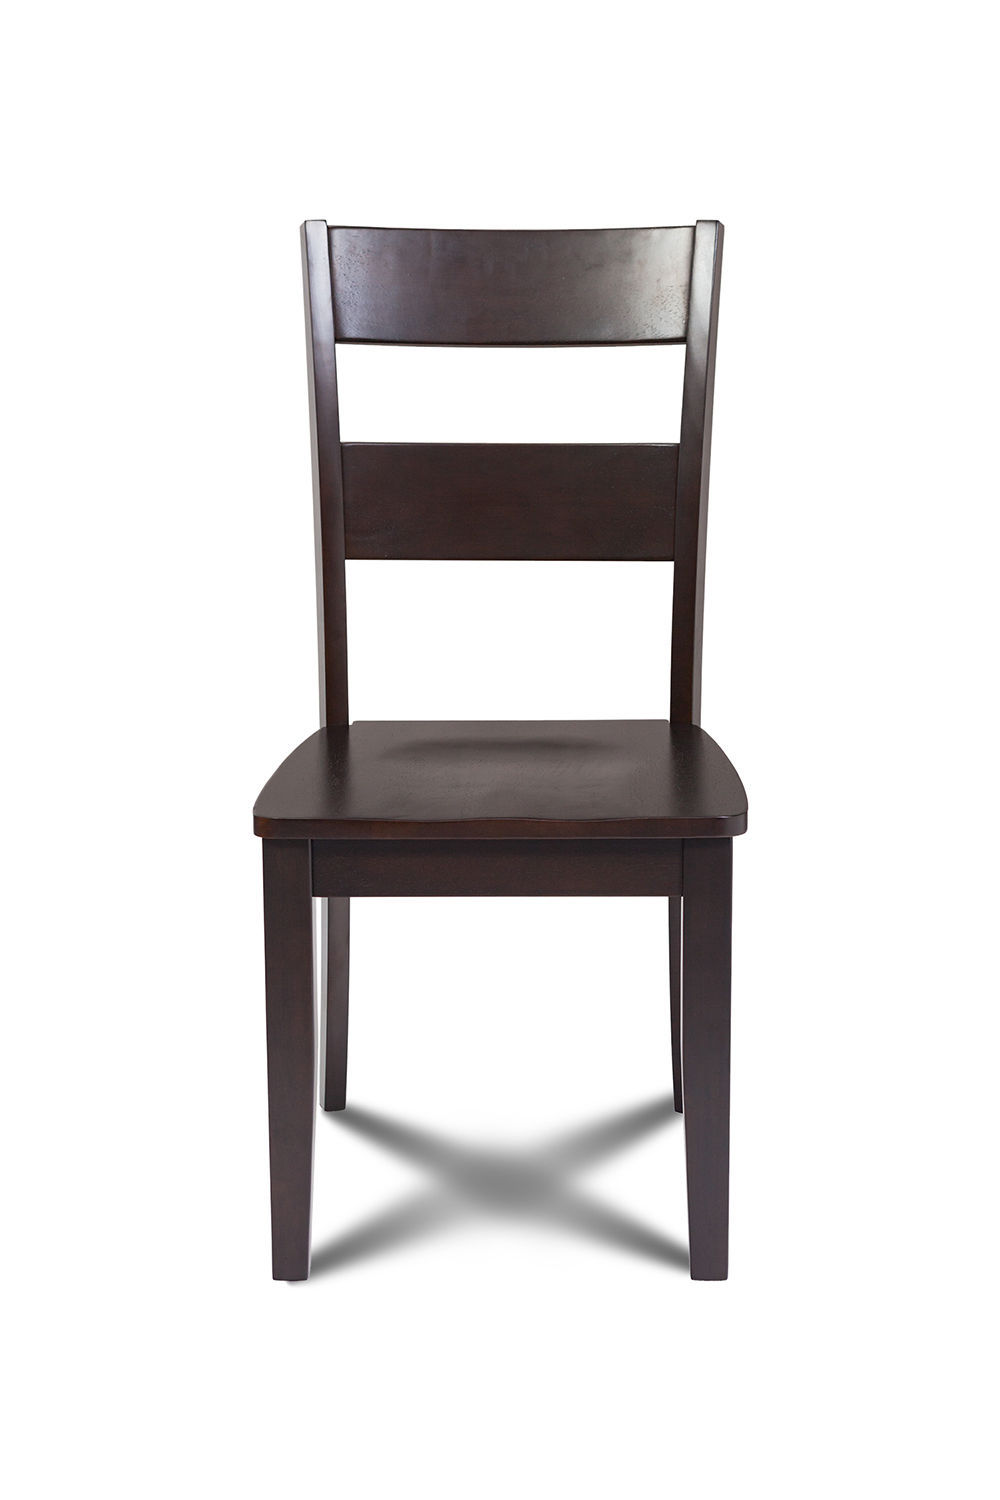 SET OF 2 KITCHEN DINING SIDE CHAIRS w/ WOODEN SEAT IN CAPPUCCINO